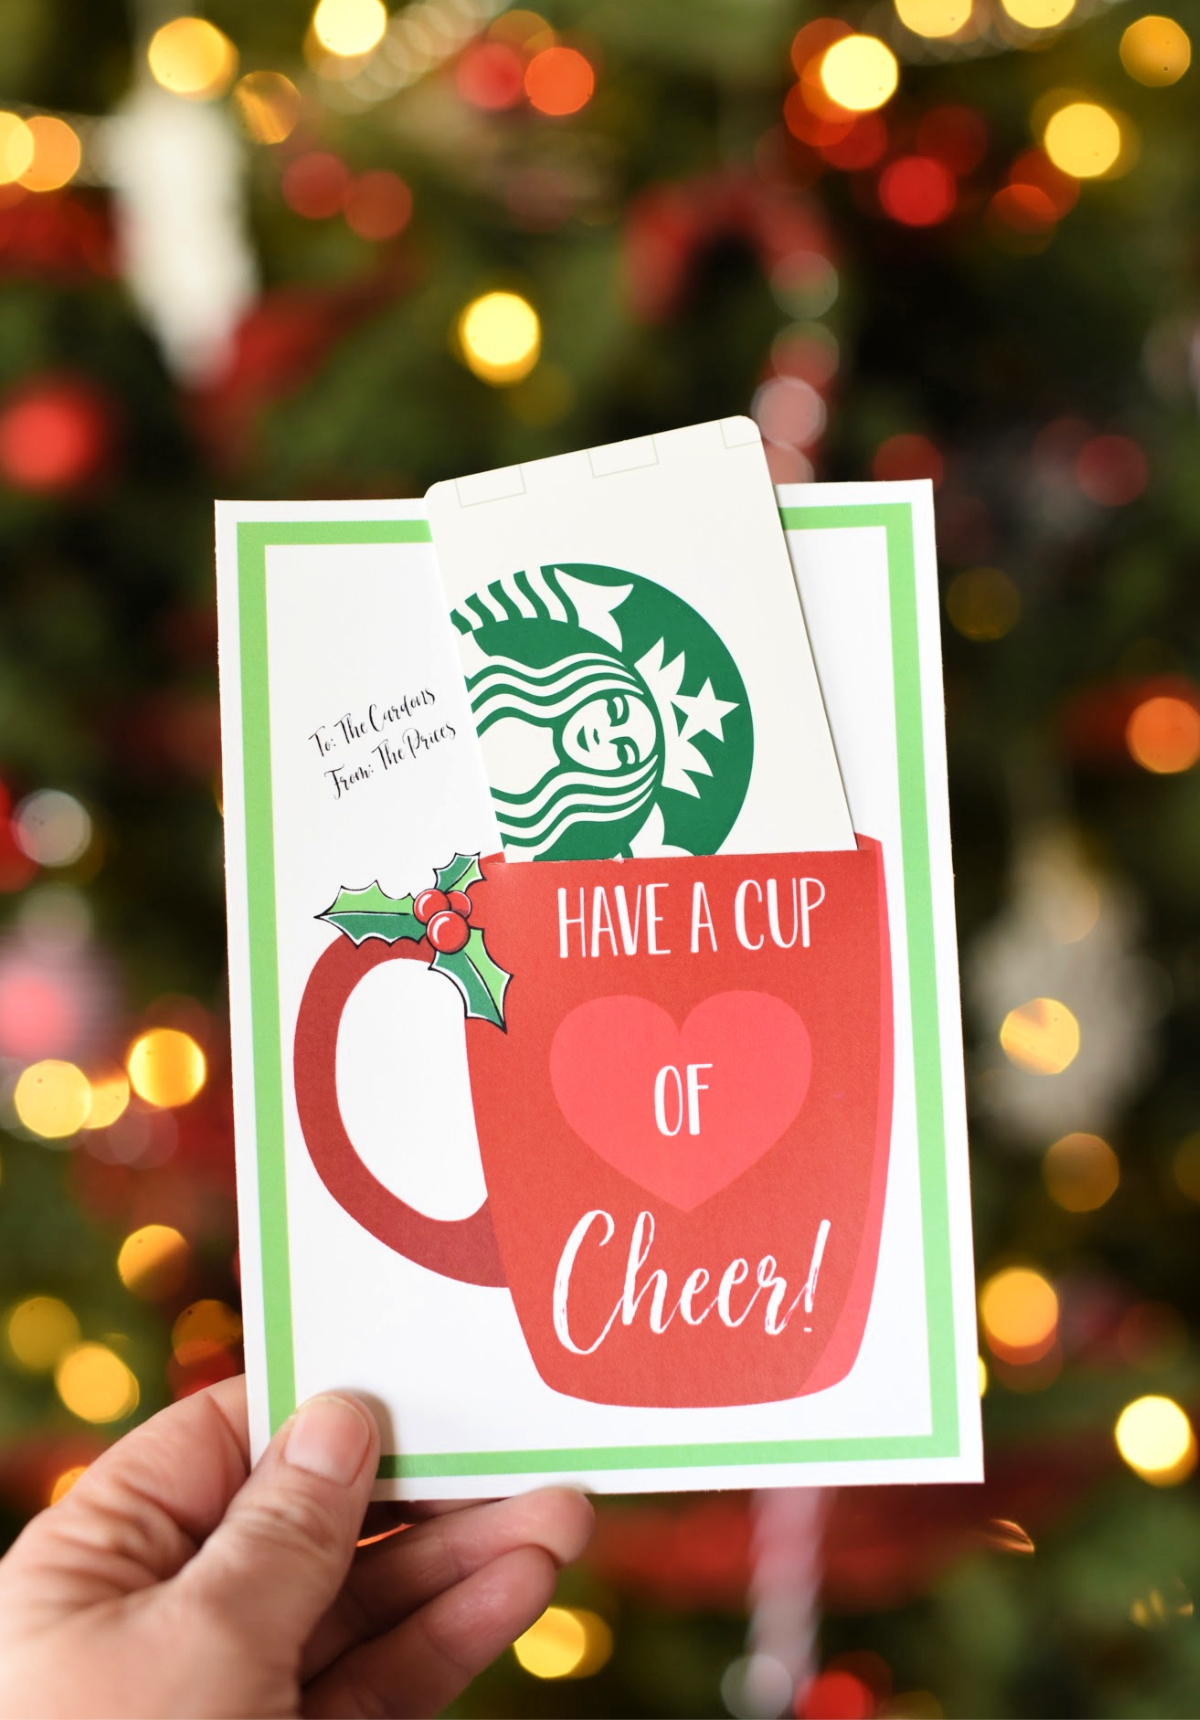 Have a Cup of Cheer Gift Card Holder-Just add a cute gift card like Starbucks to this printable gift card holder and you've got a great Christmas holiday gift idea for friends and neighbors. #christmasgift #neighborgift